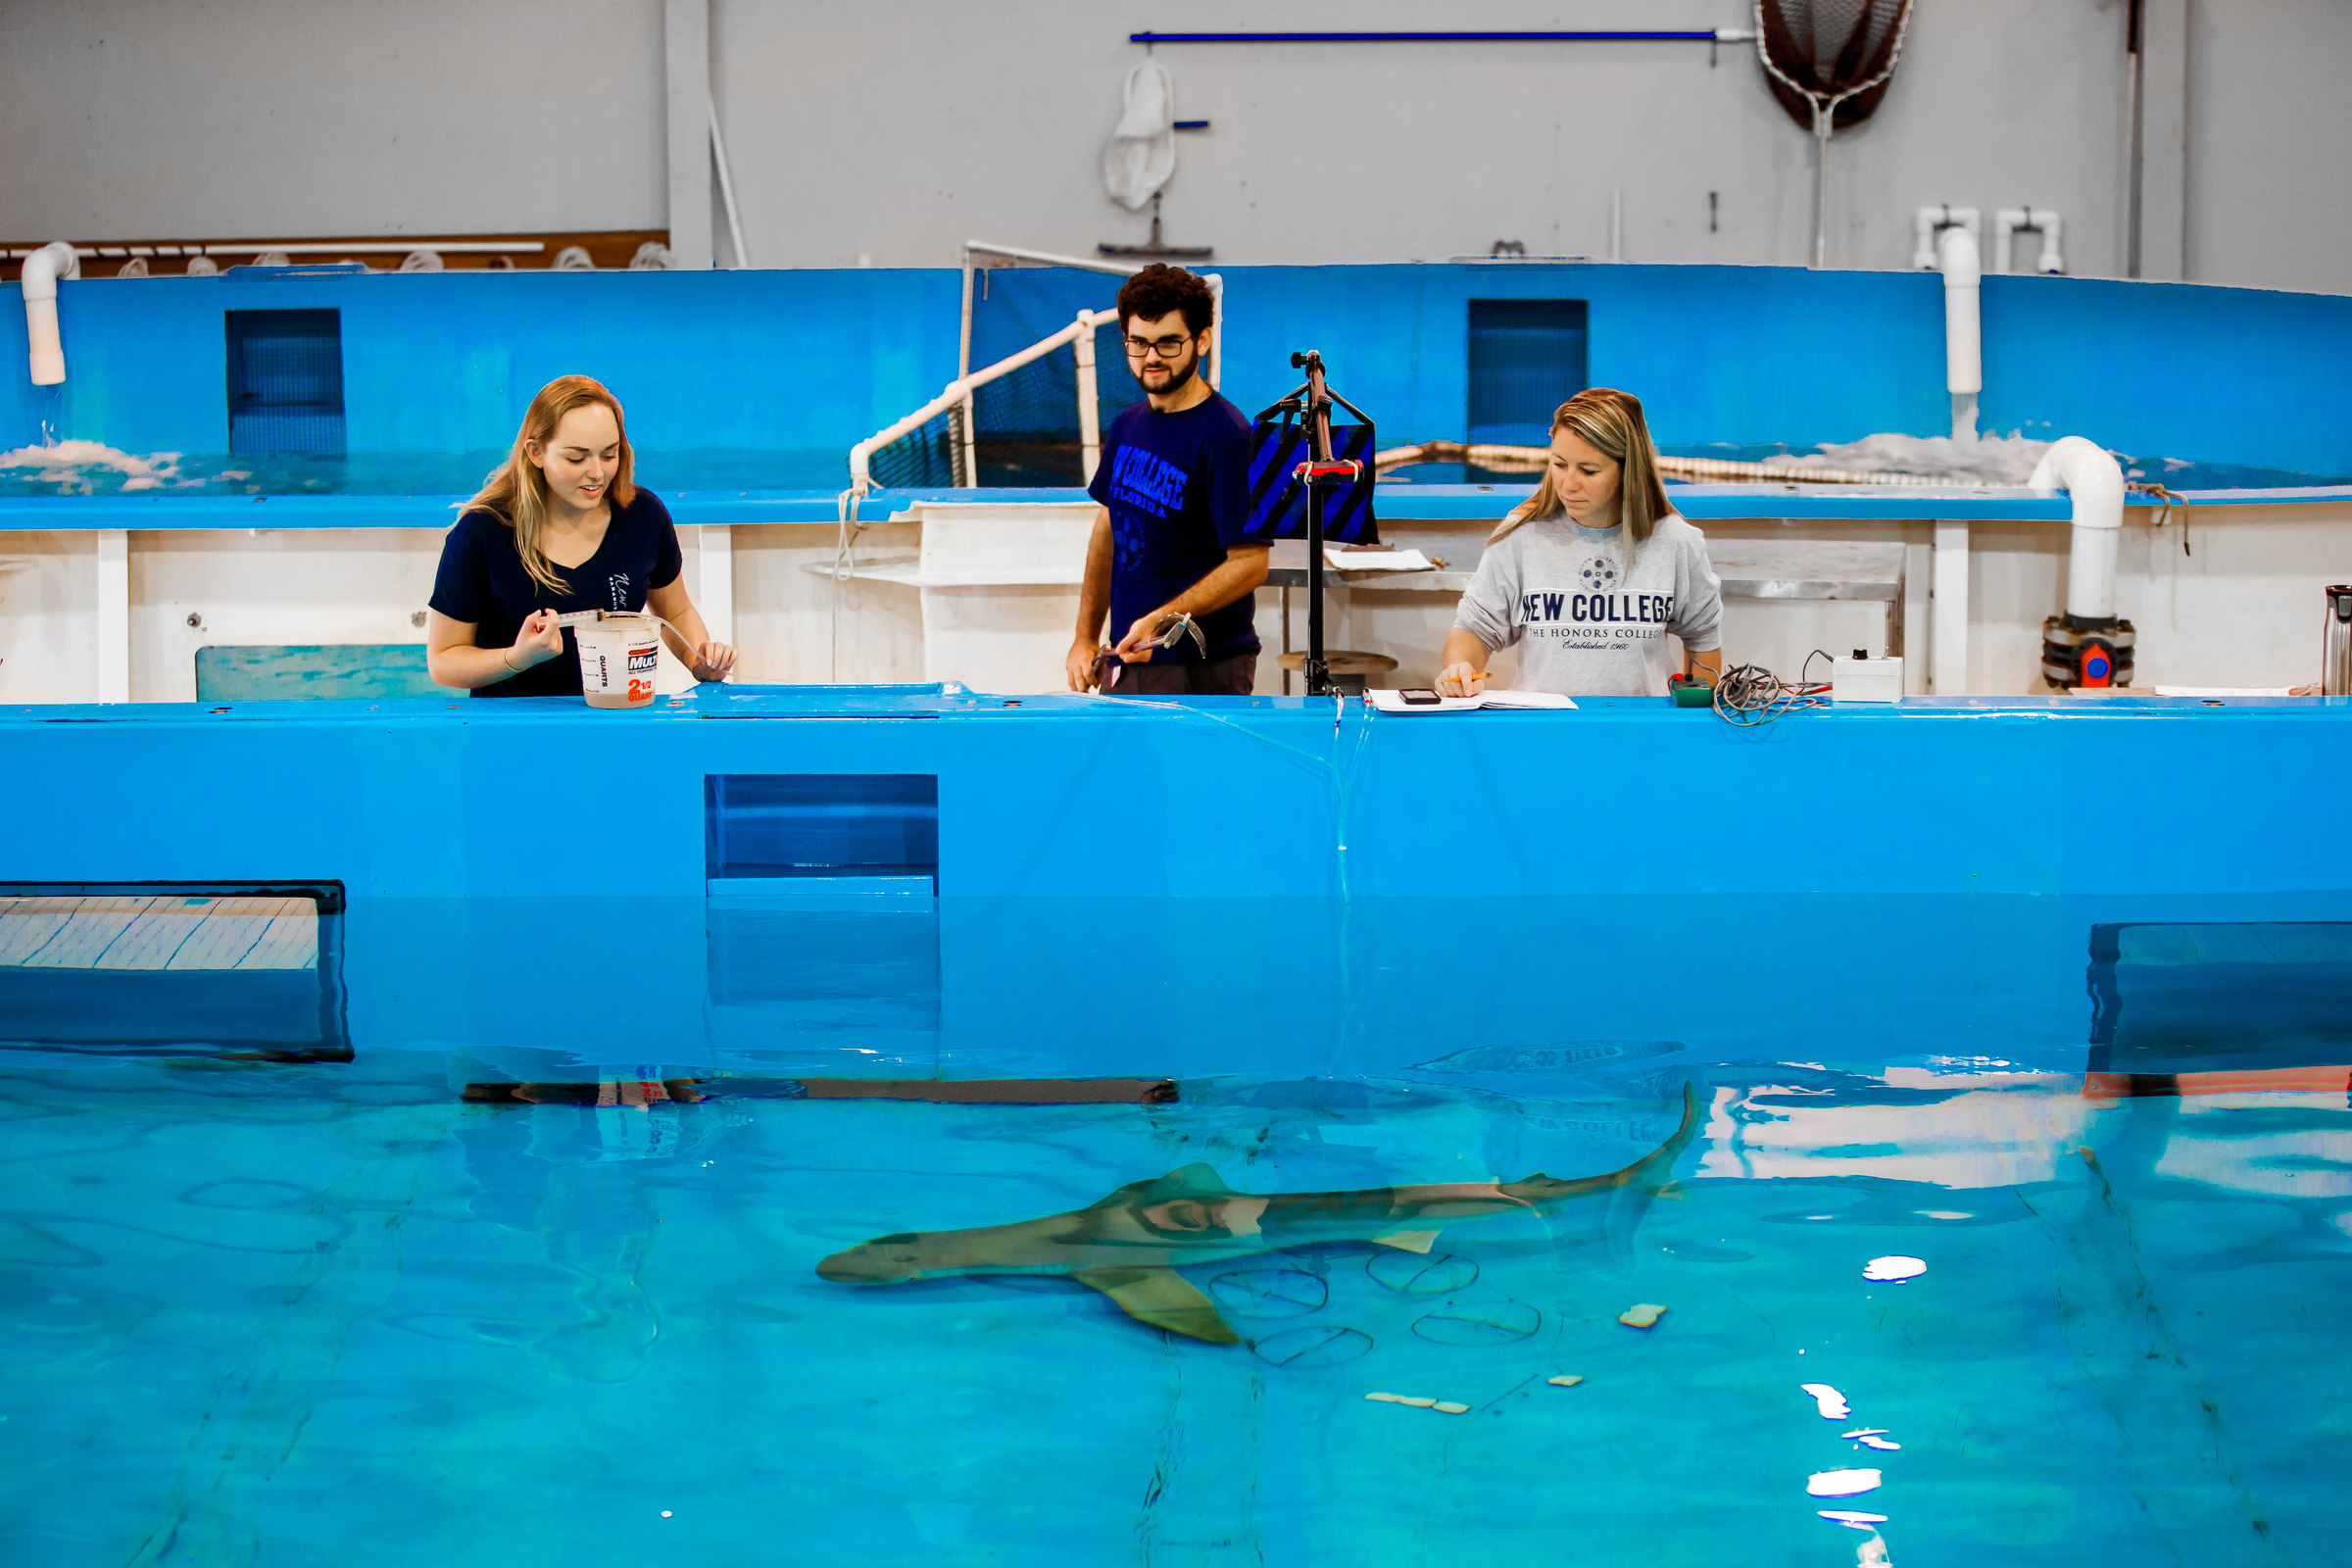 New College of Florida students do research on sharks at Mote Marine Laboratory in Sarasota, as part of an Independent Study Project in 2015.